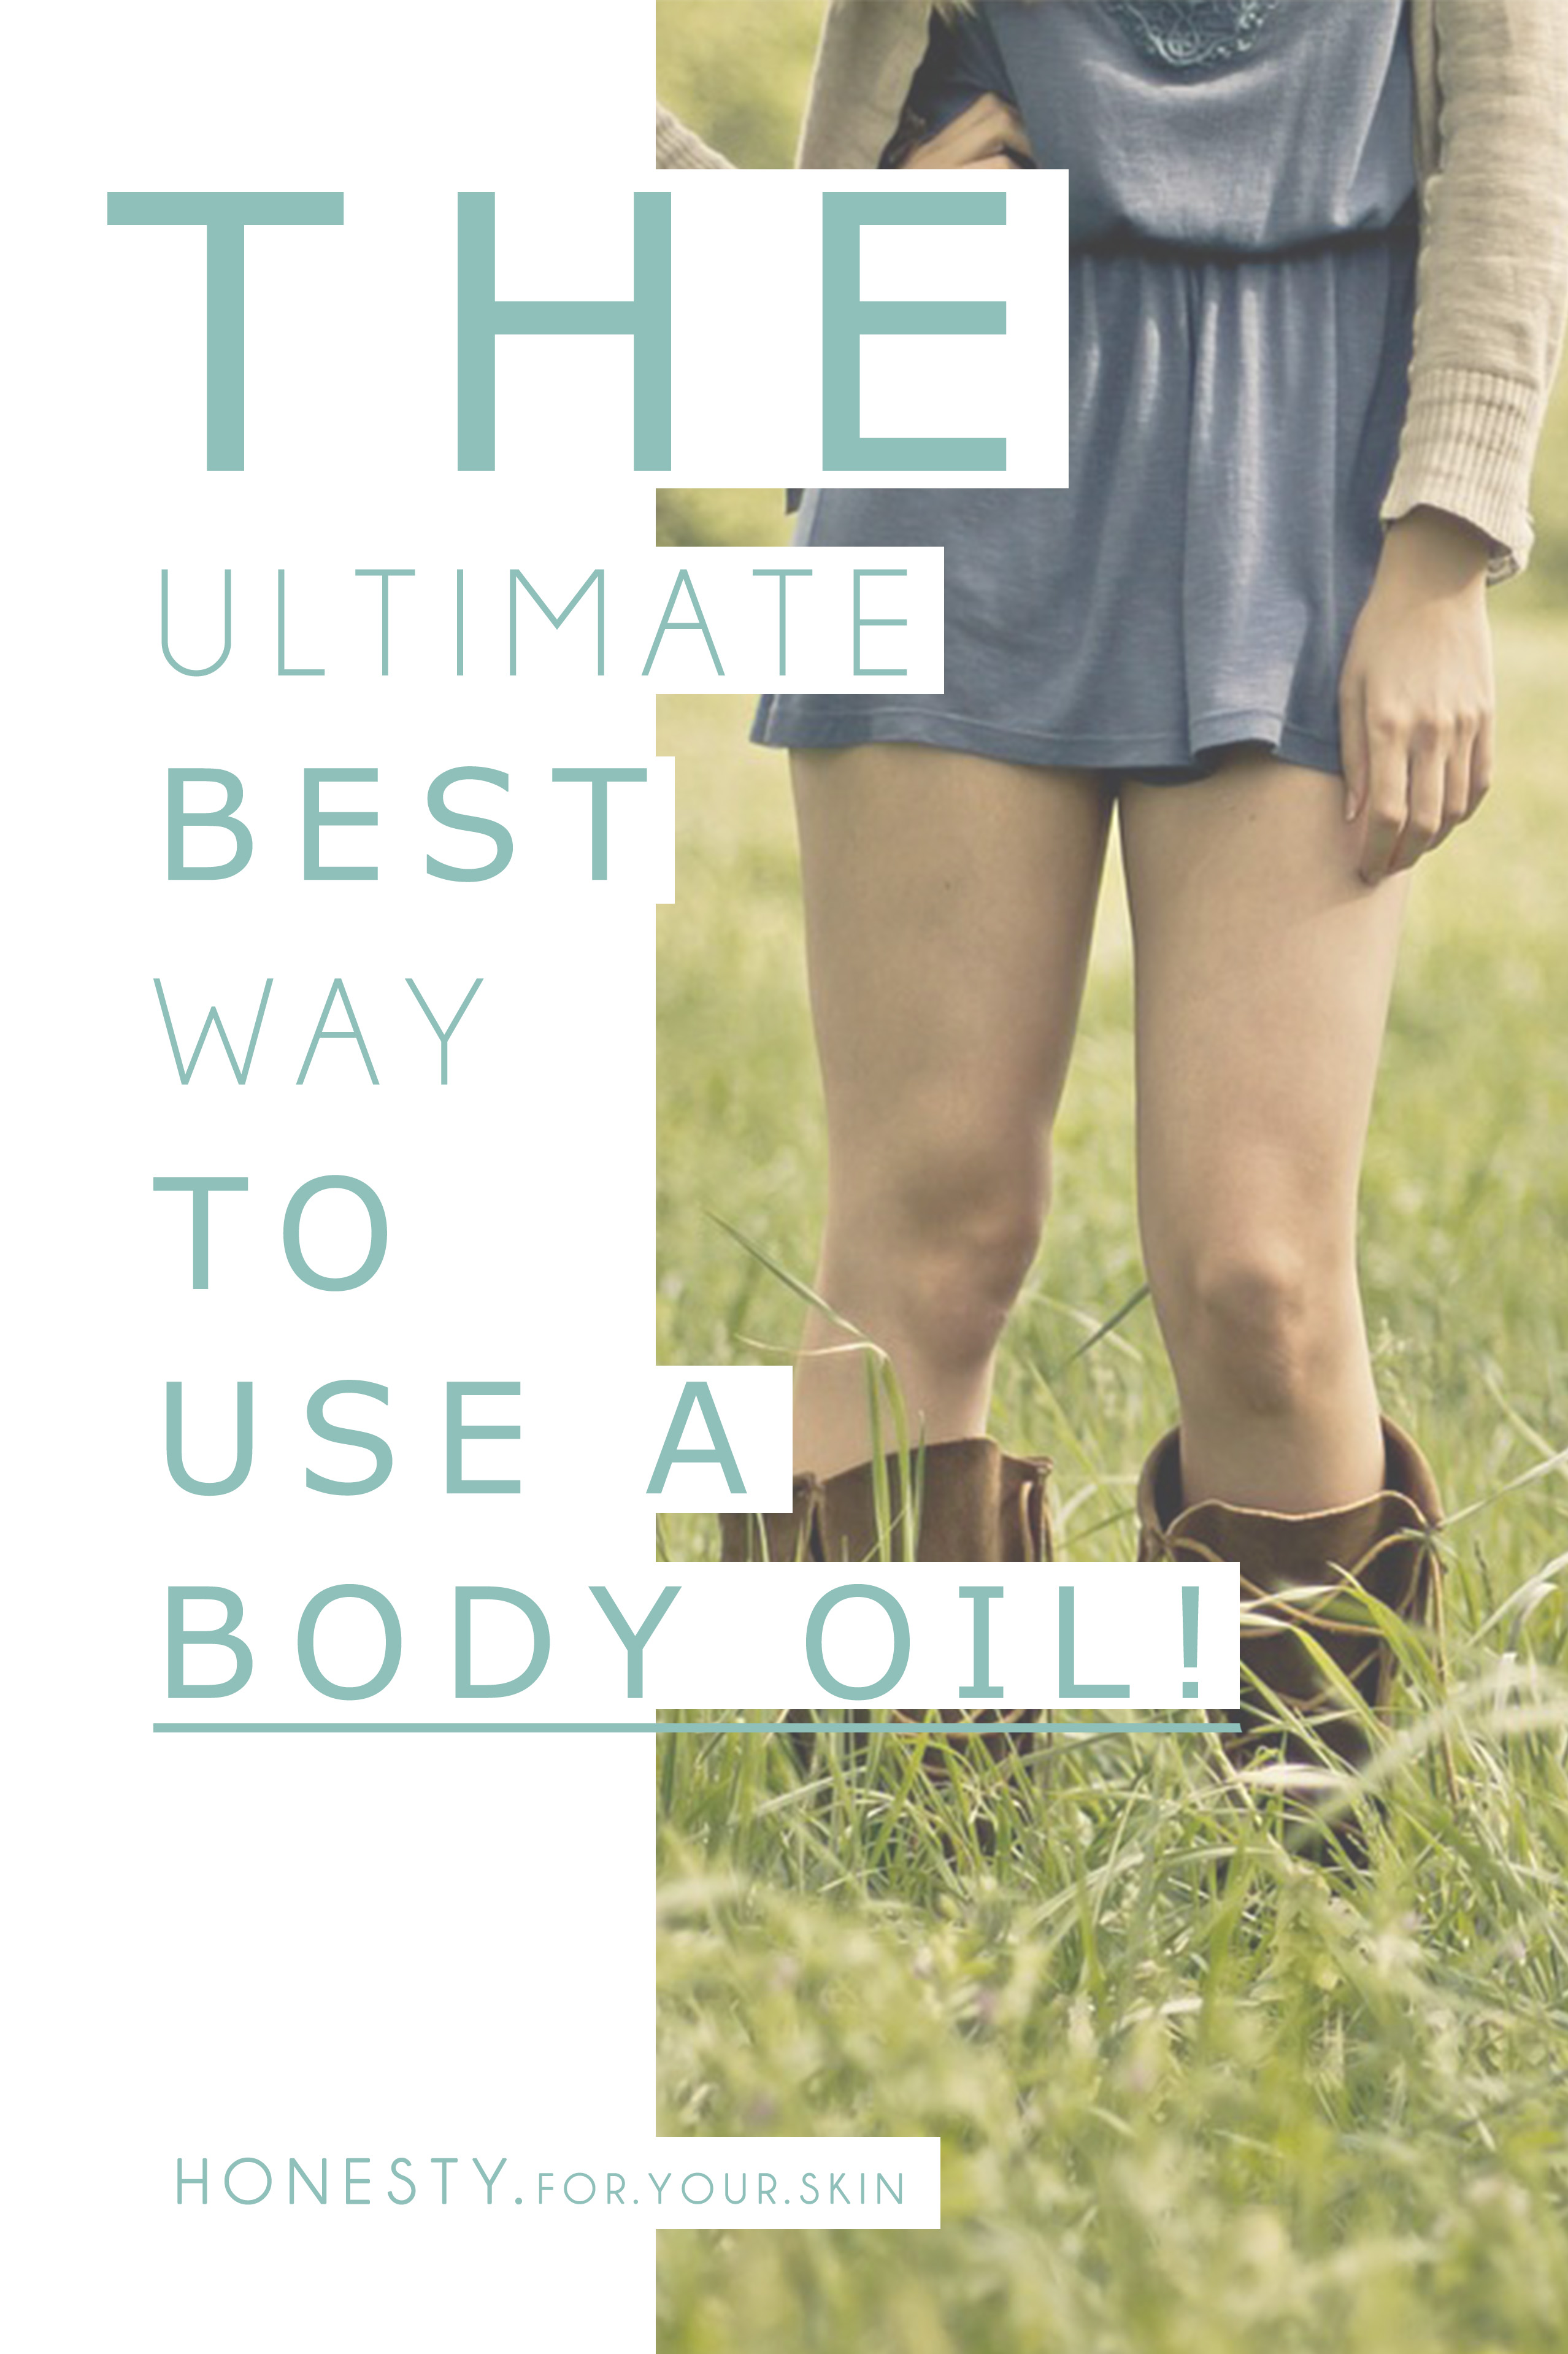 Why you should absolutely consider having a good bonding session with the body oil PLUS the absolute ultimate BEST way to use a body oil to get skin beaming!